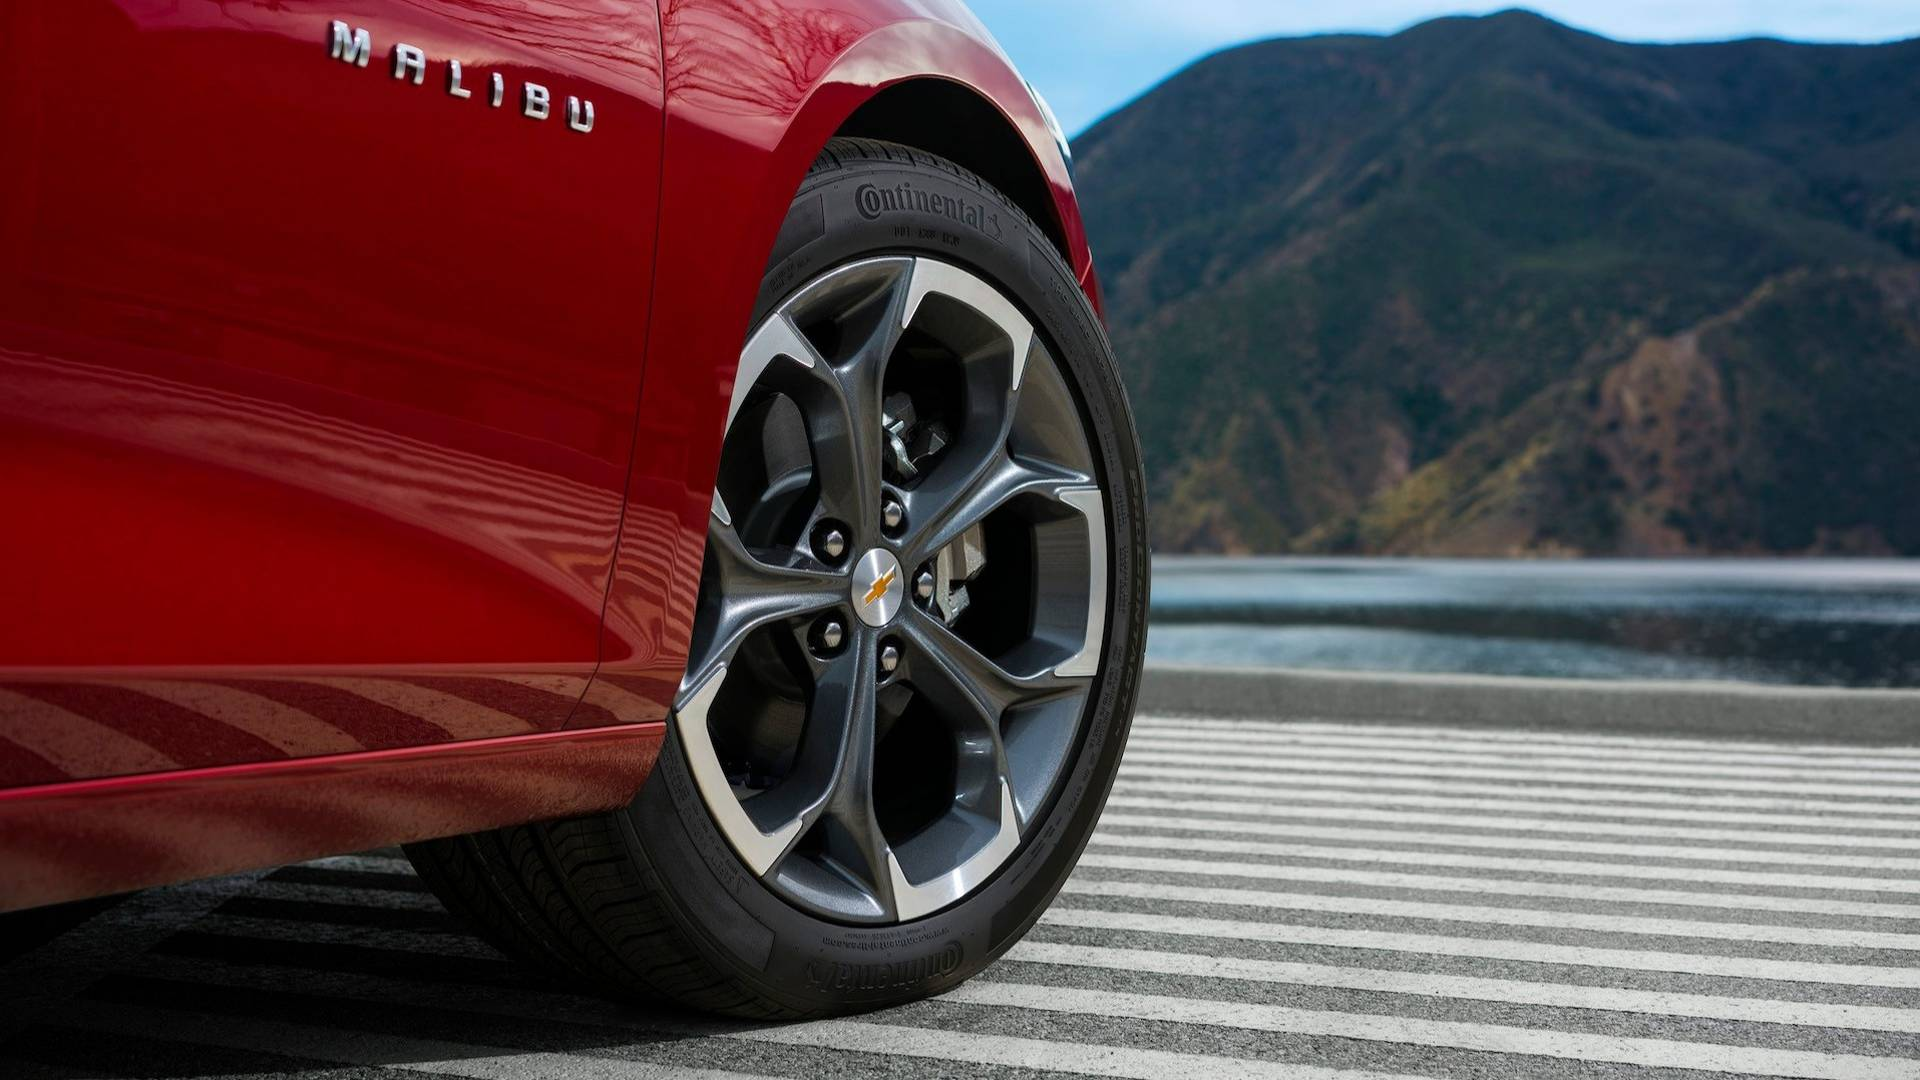 2019 Chevrolet Malibu Joins The Automakers Facelifted